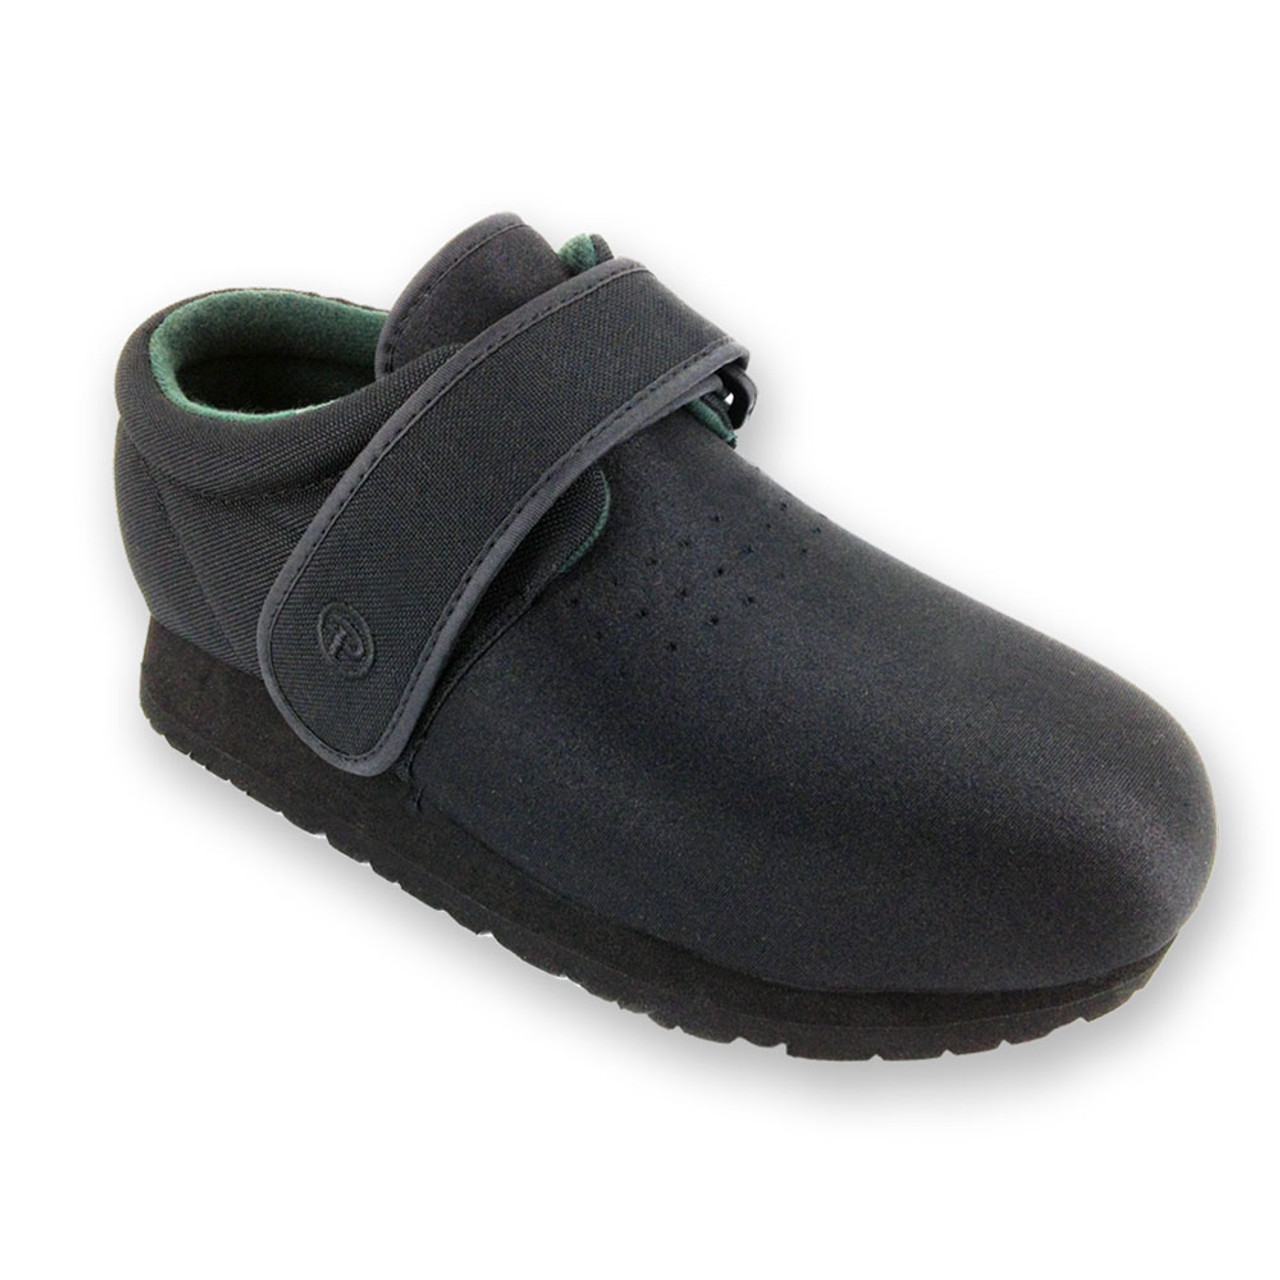 6a260539df Shoes For Swollen Feet | Diabetes | Hammertoes by Pedors